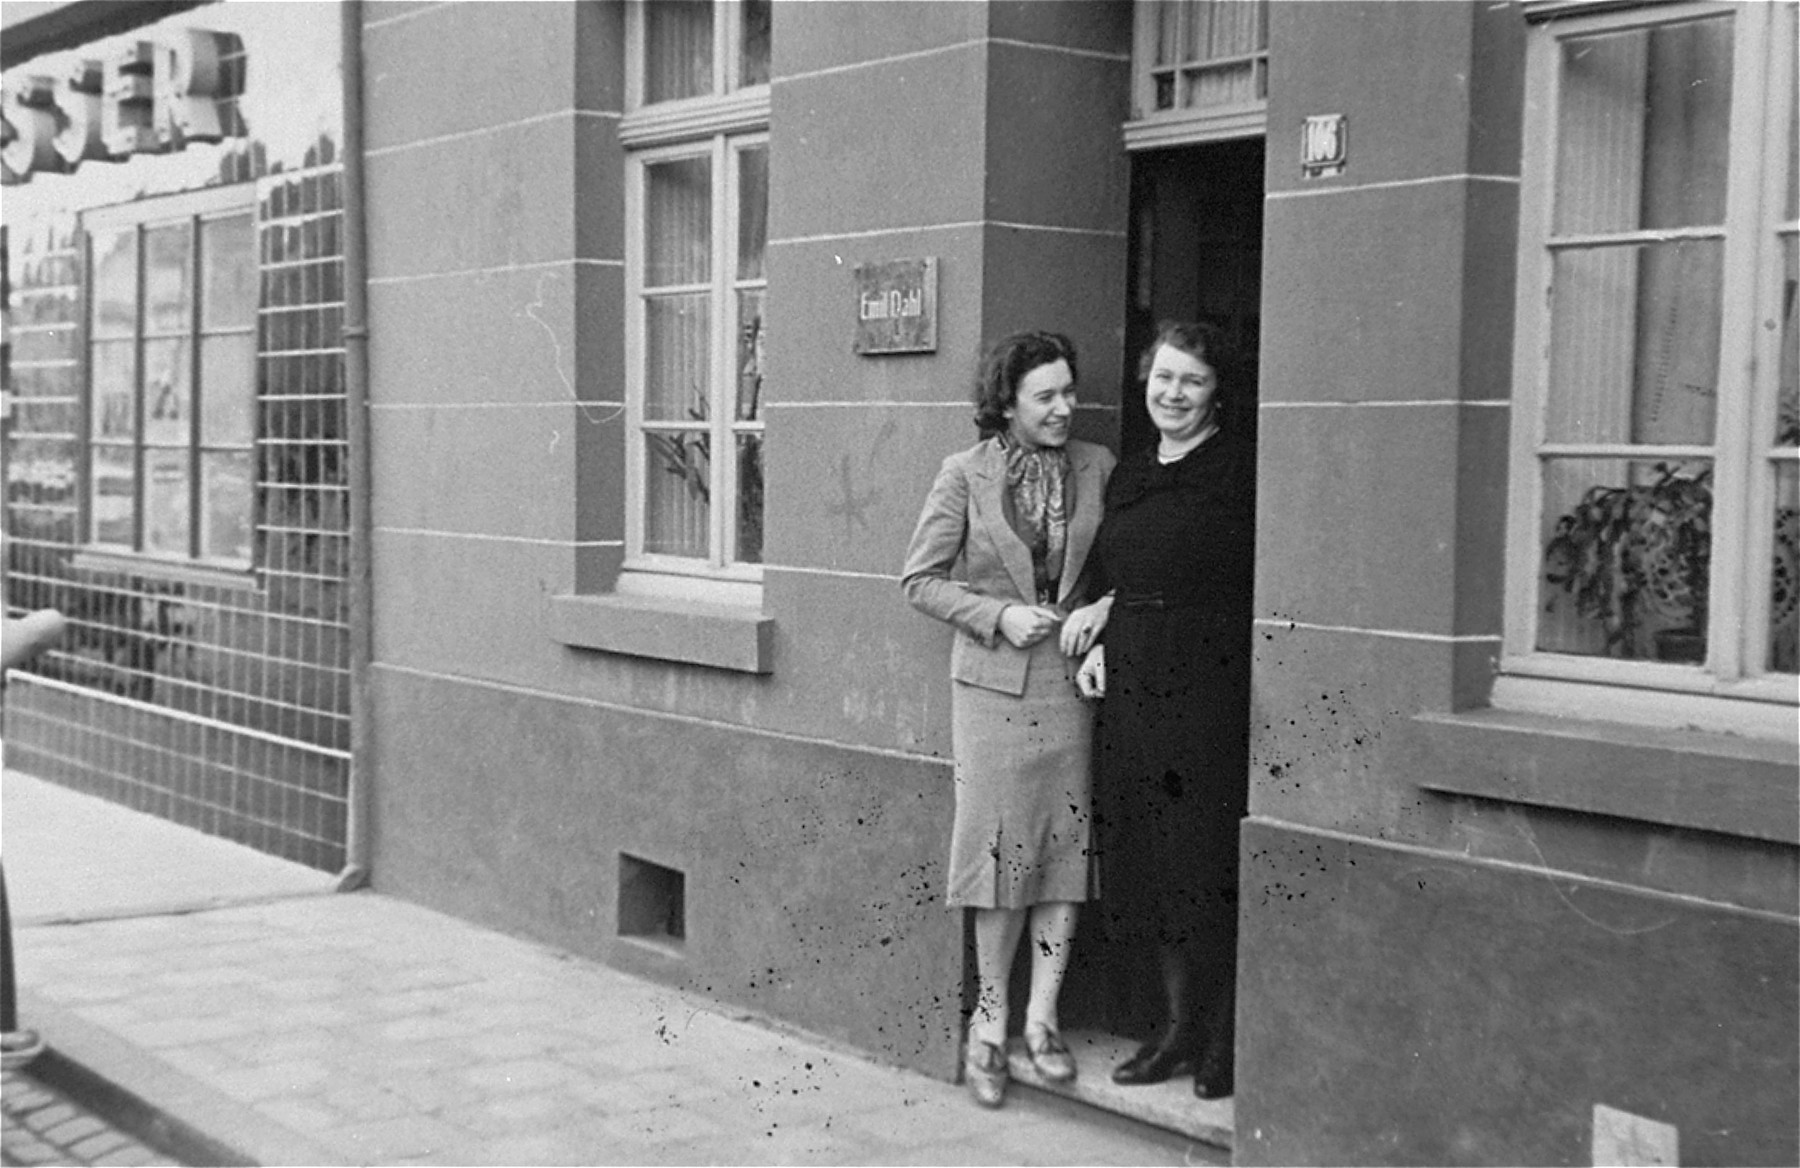 The donor, Ilse Dahl and her mother pose at the entrance to their home in Geilenkirchen, Germany.